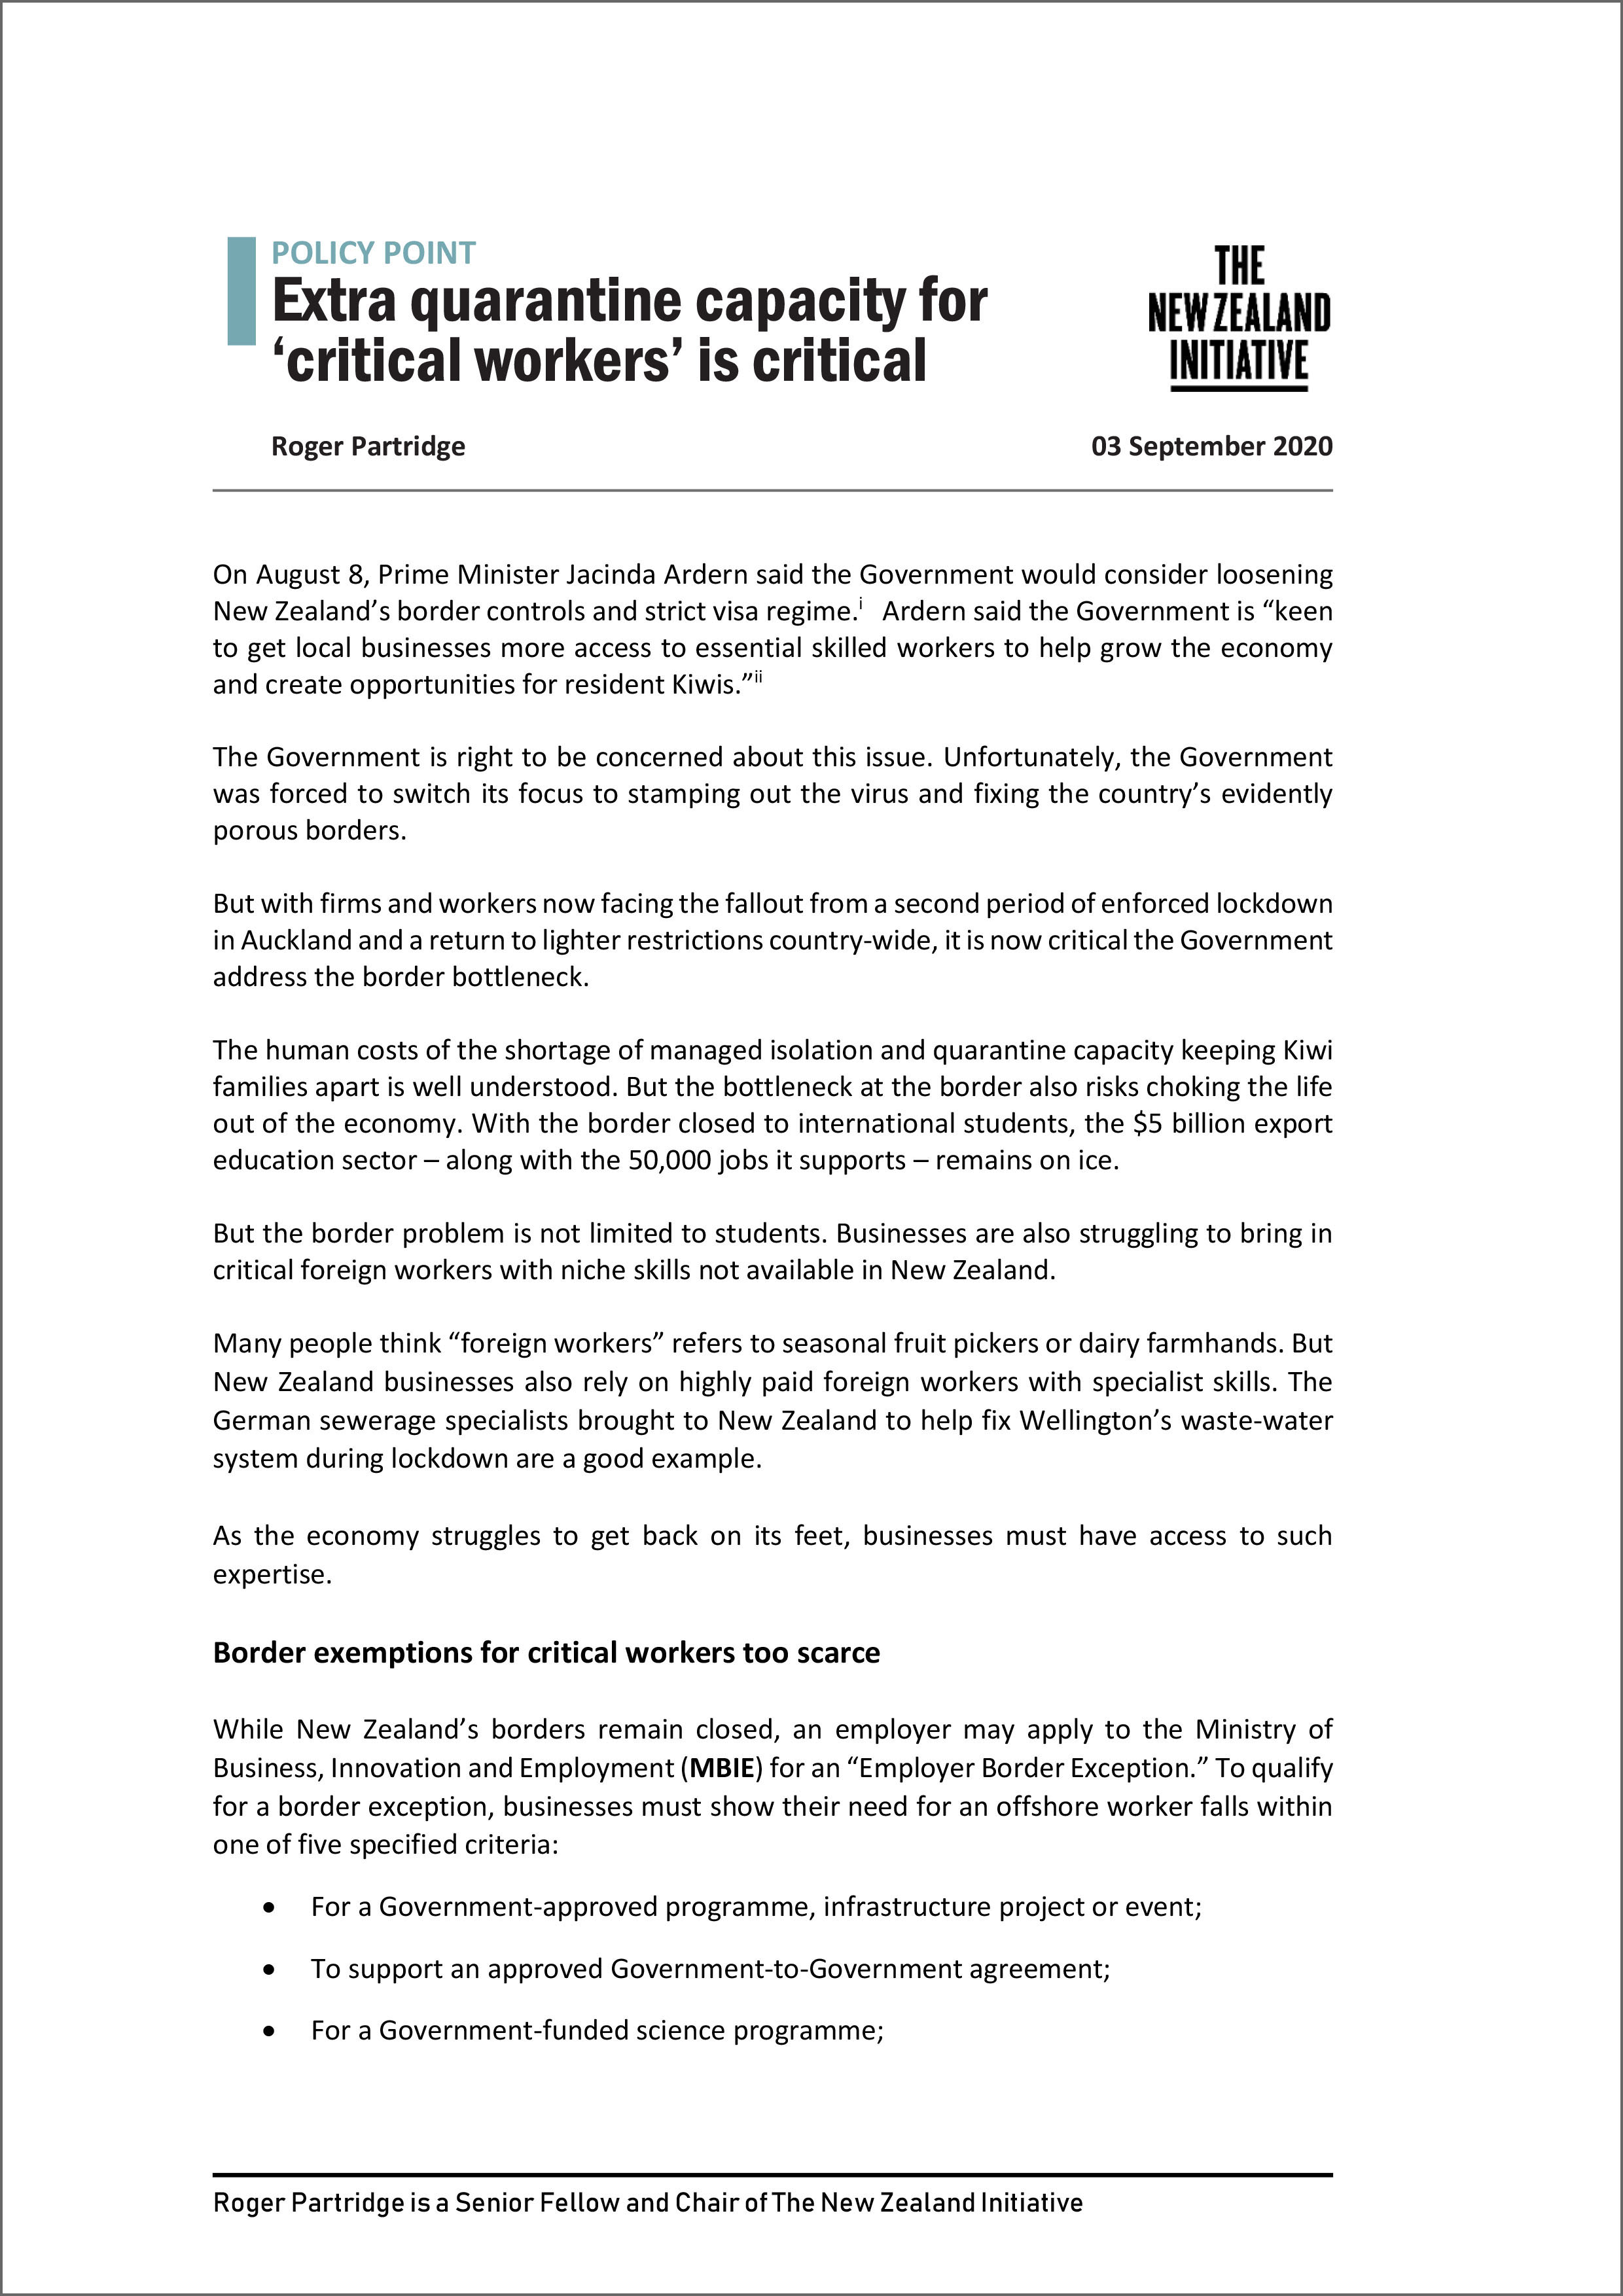 Policy point Extra quarantine capacity for critical workers is critical2